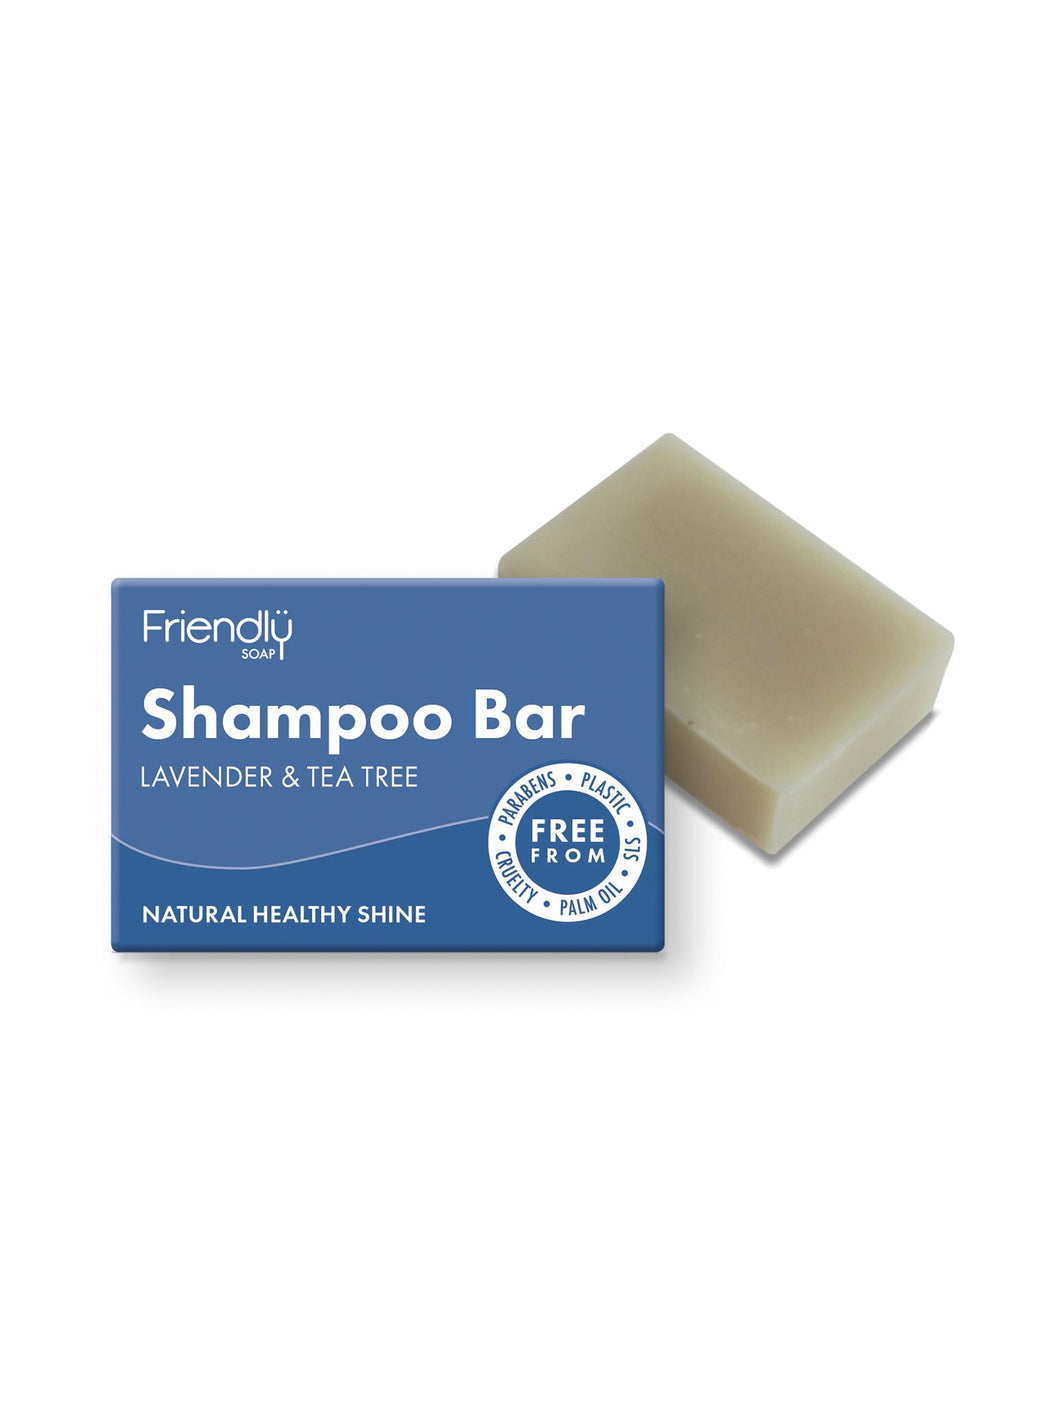 Friendly Lavender & Tea Tree Shampoo Bar